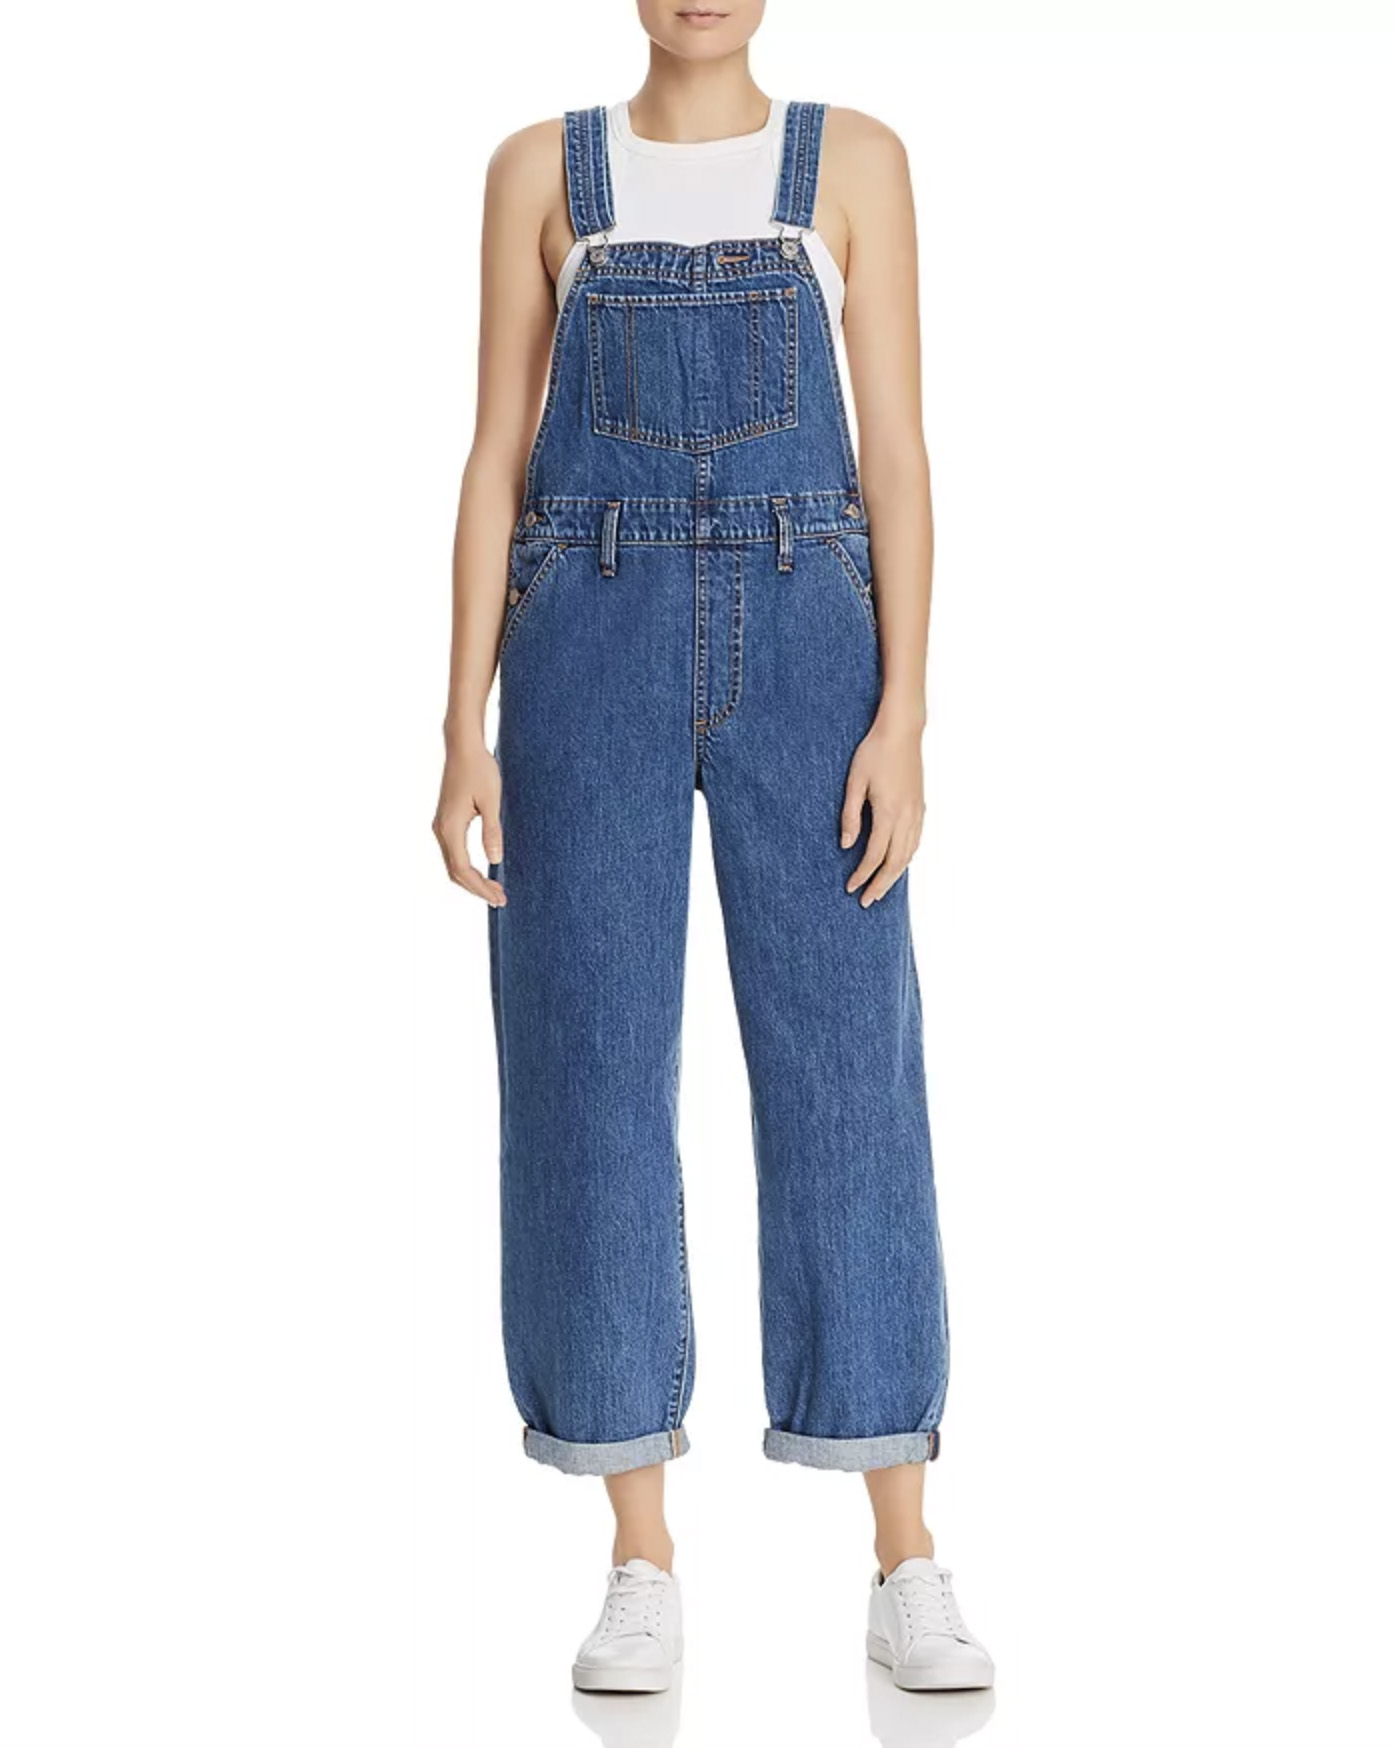 Levi's Baggy Denim Overalls in Larger Than Life